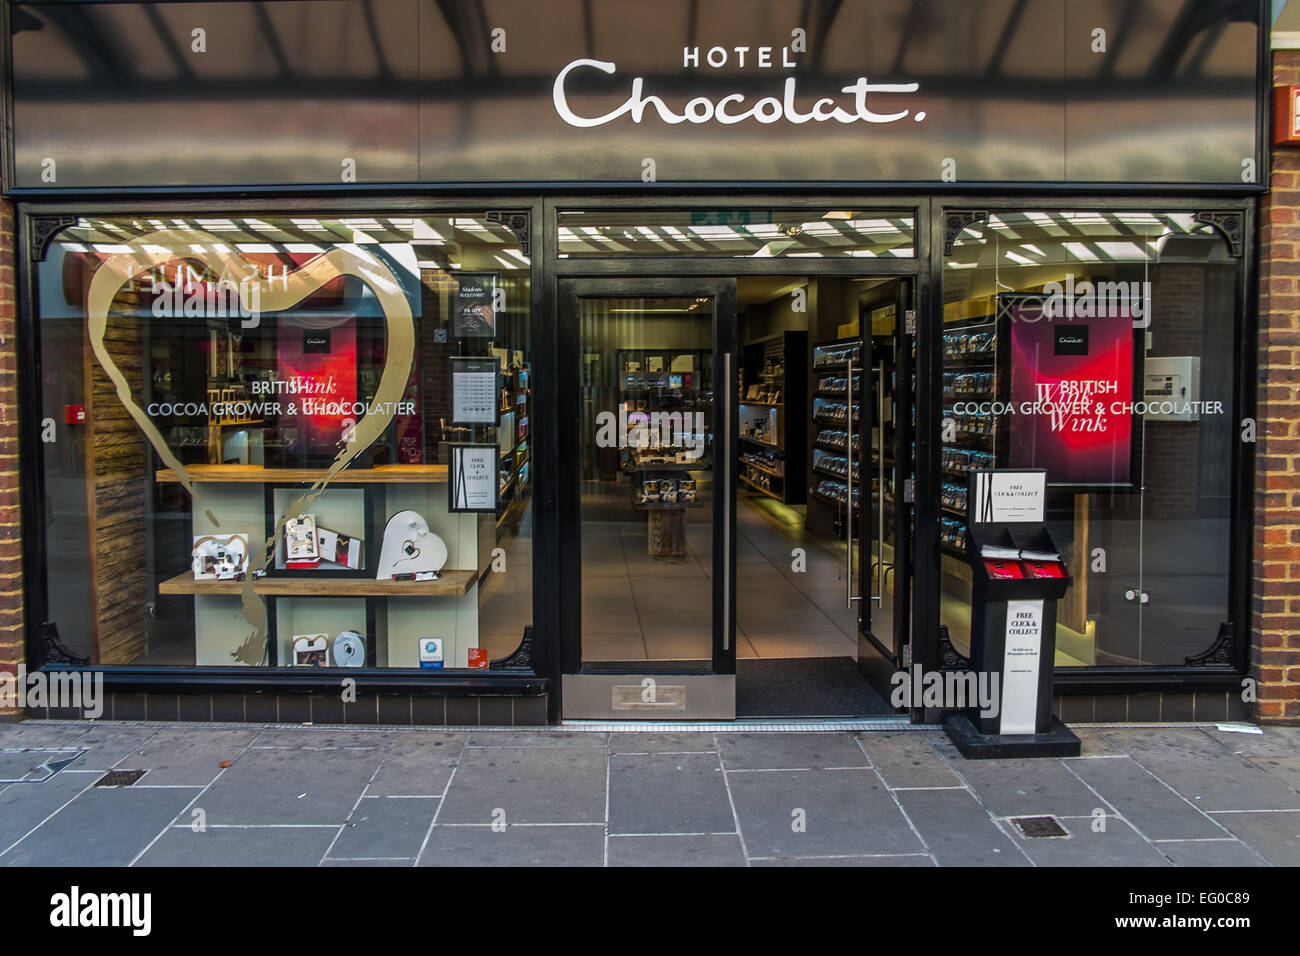 Hotel chocolate  in Salisbury Wiltshire - Stock Image